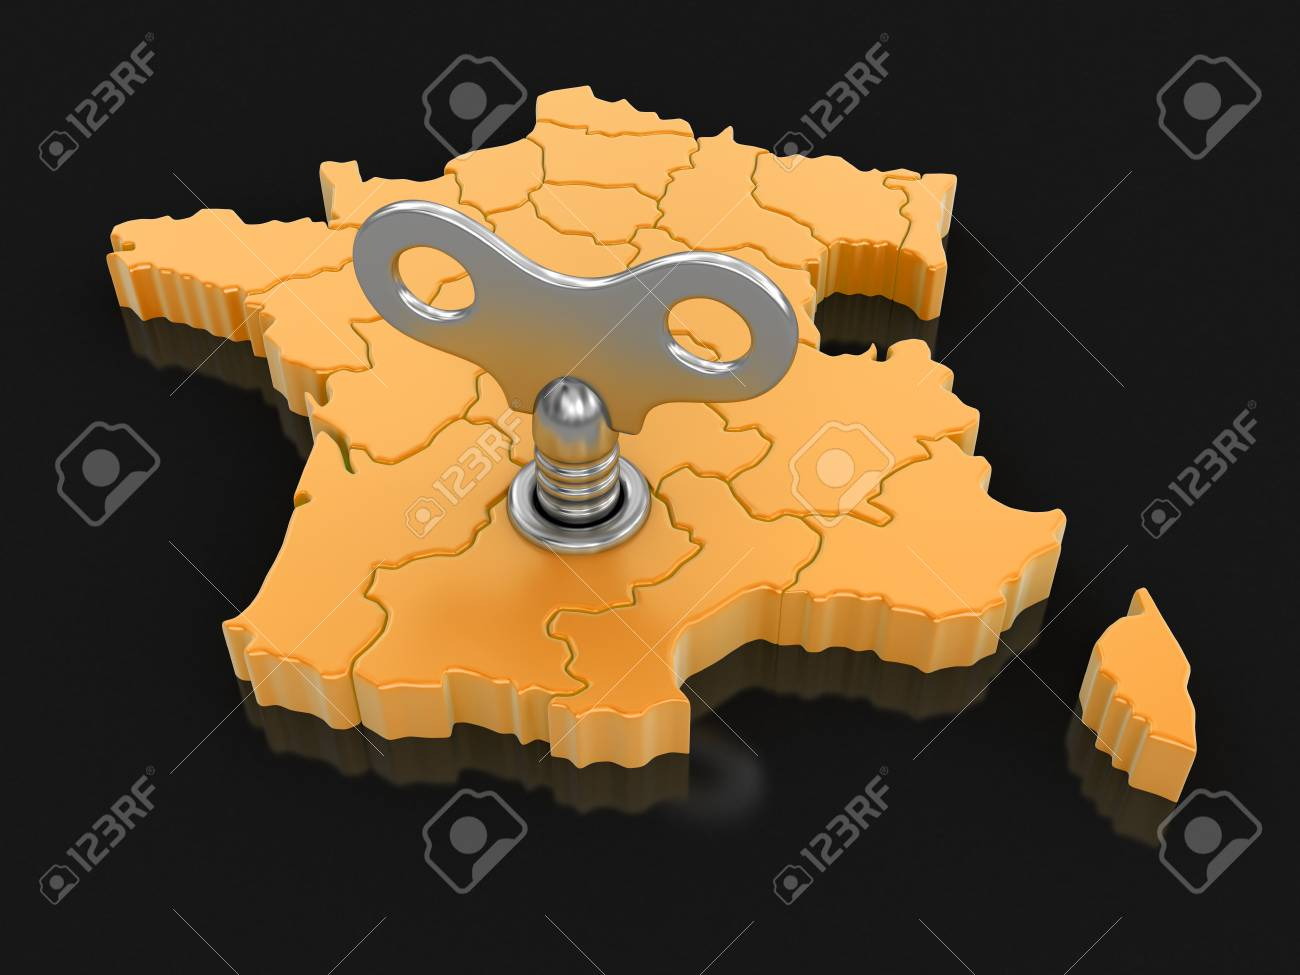 Map Of France With Key.Map Of France With Winding Key Image With Clipping Path Stock